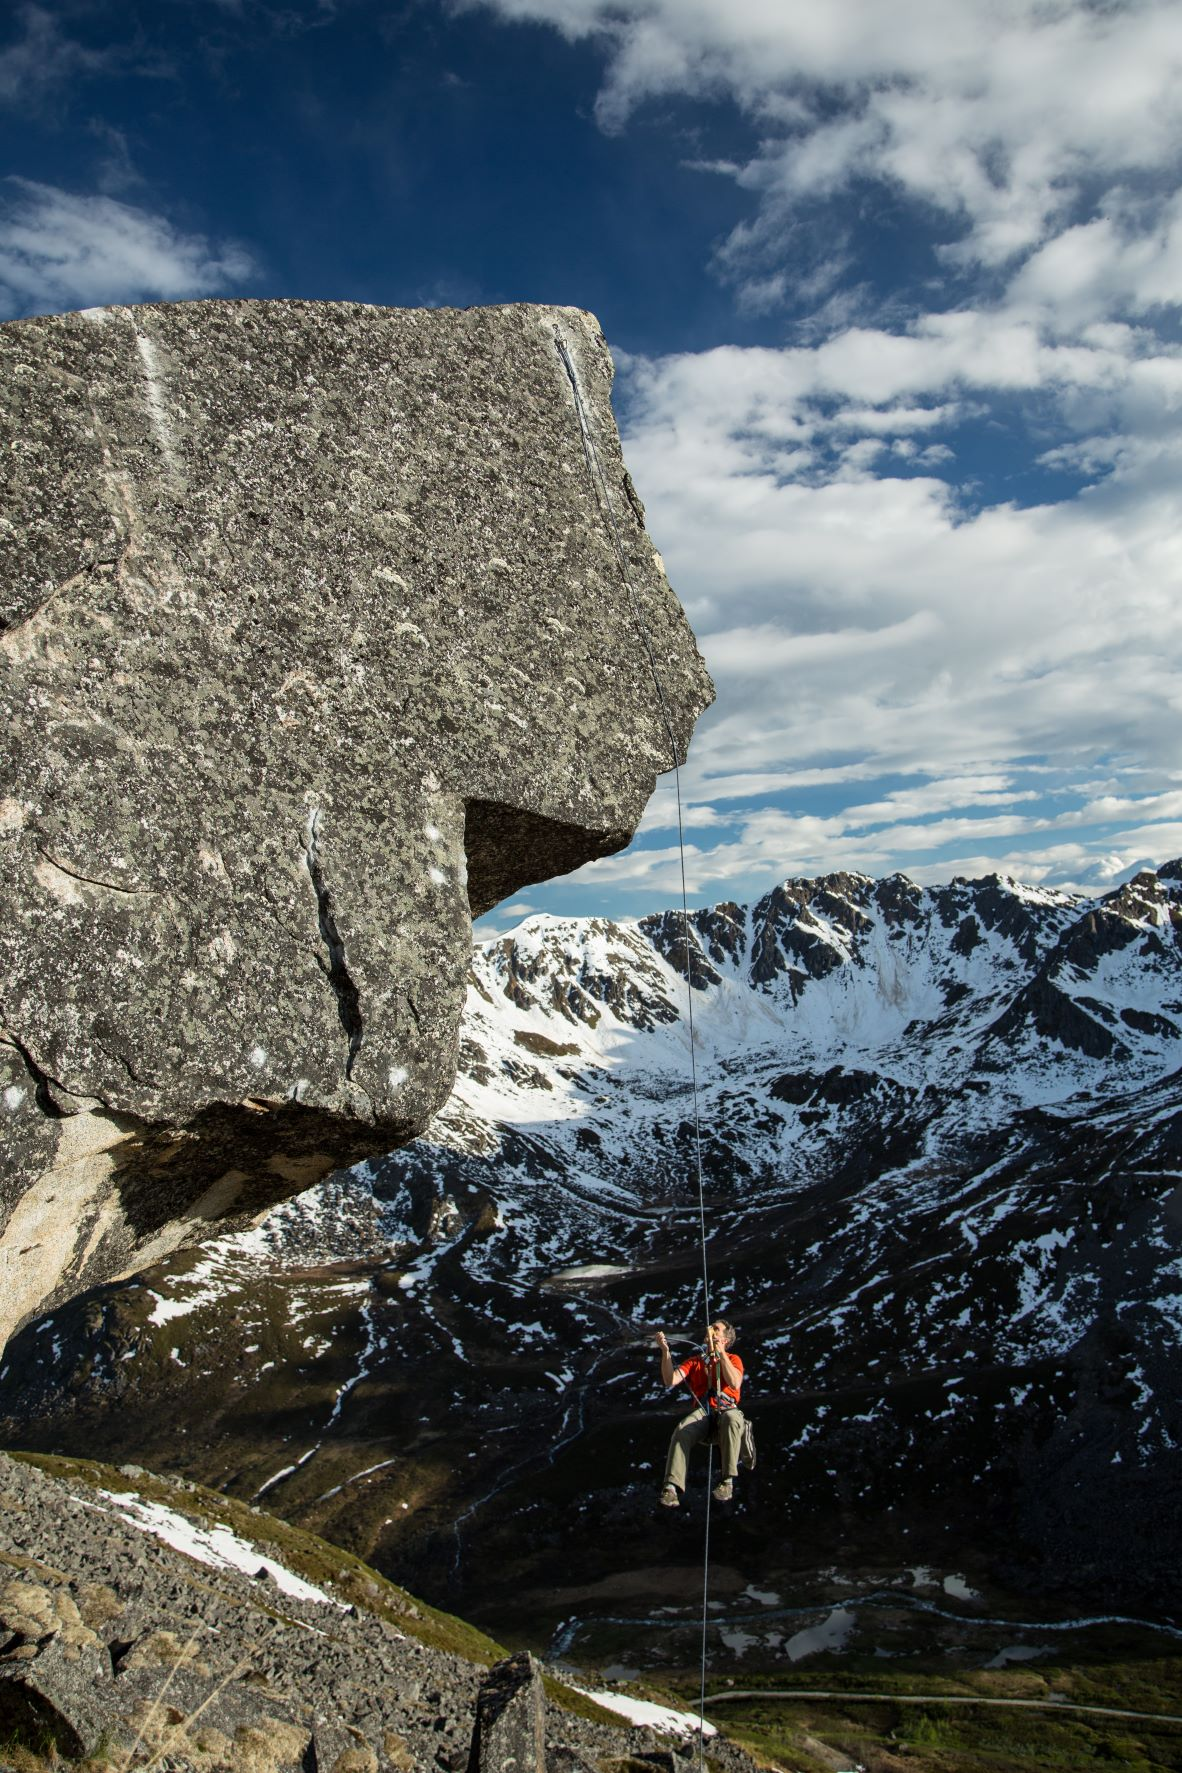 A climber rapeling of a route in Hatcher Pass in the foreground, with a mountain range in the background